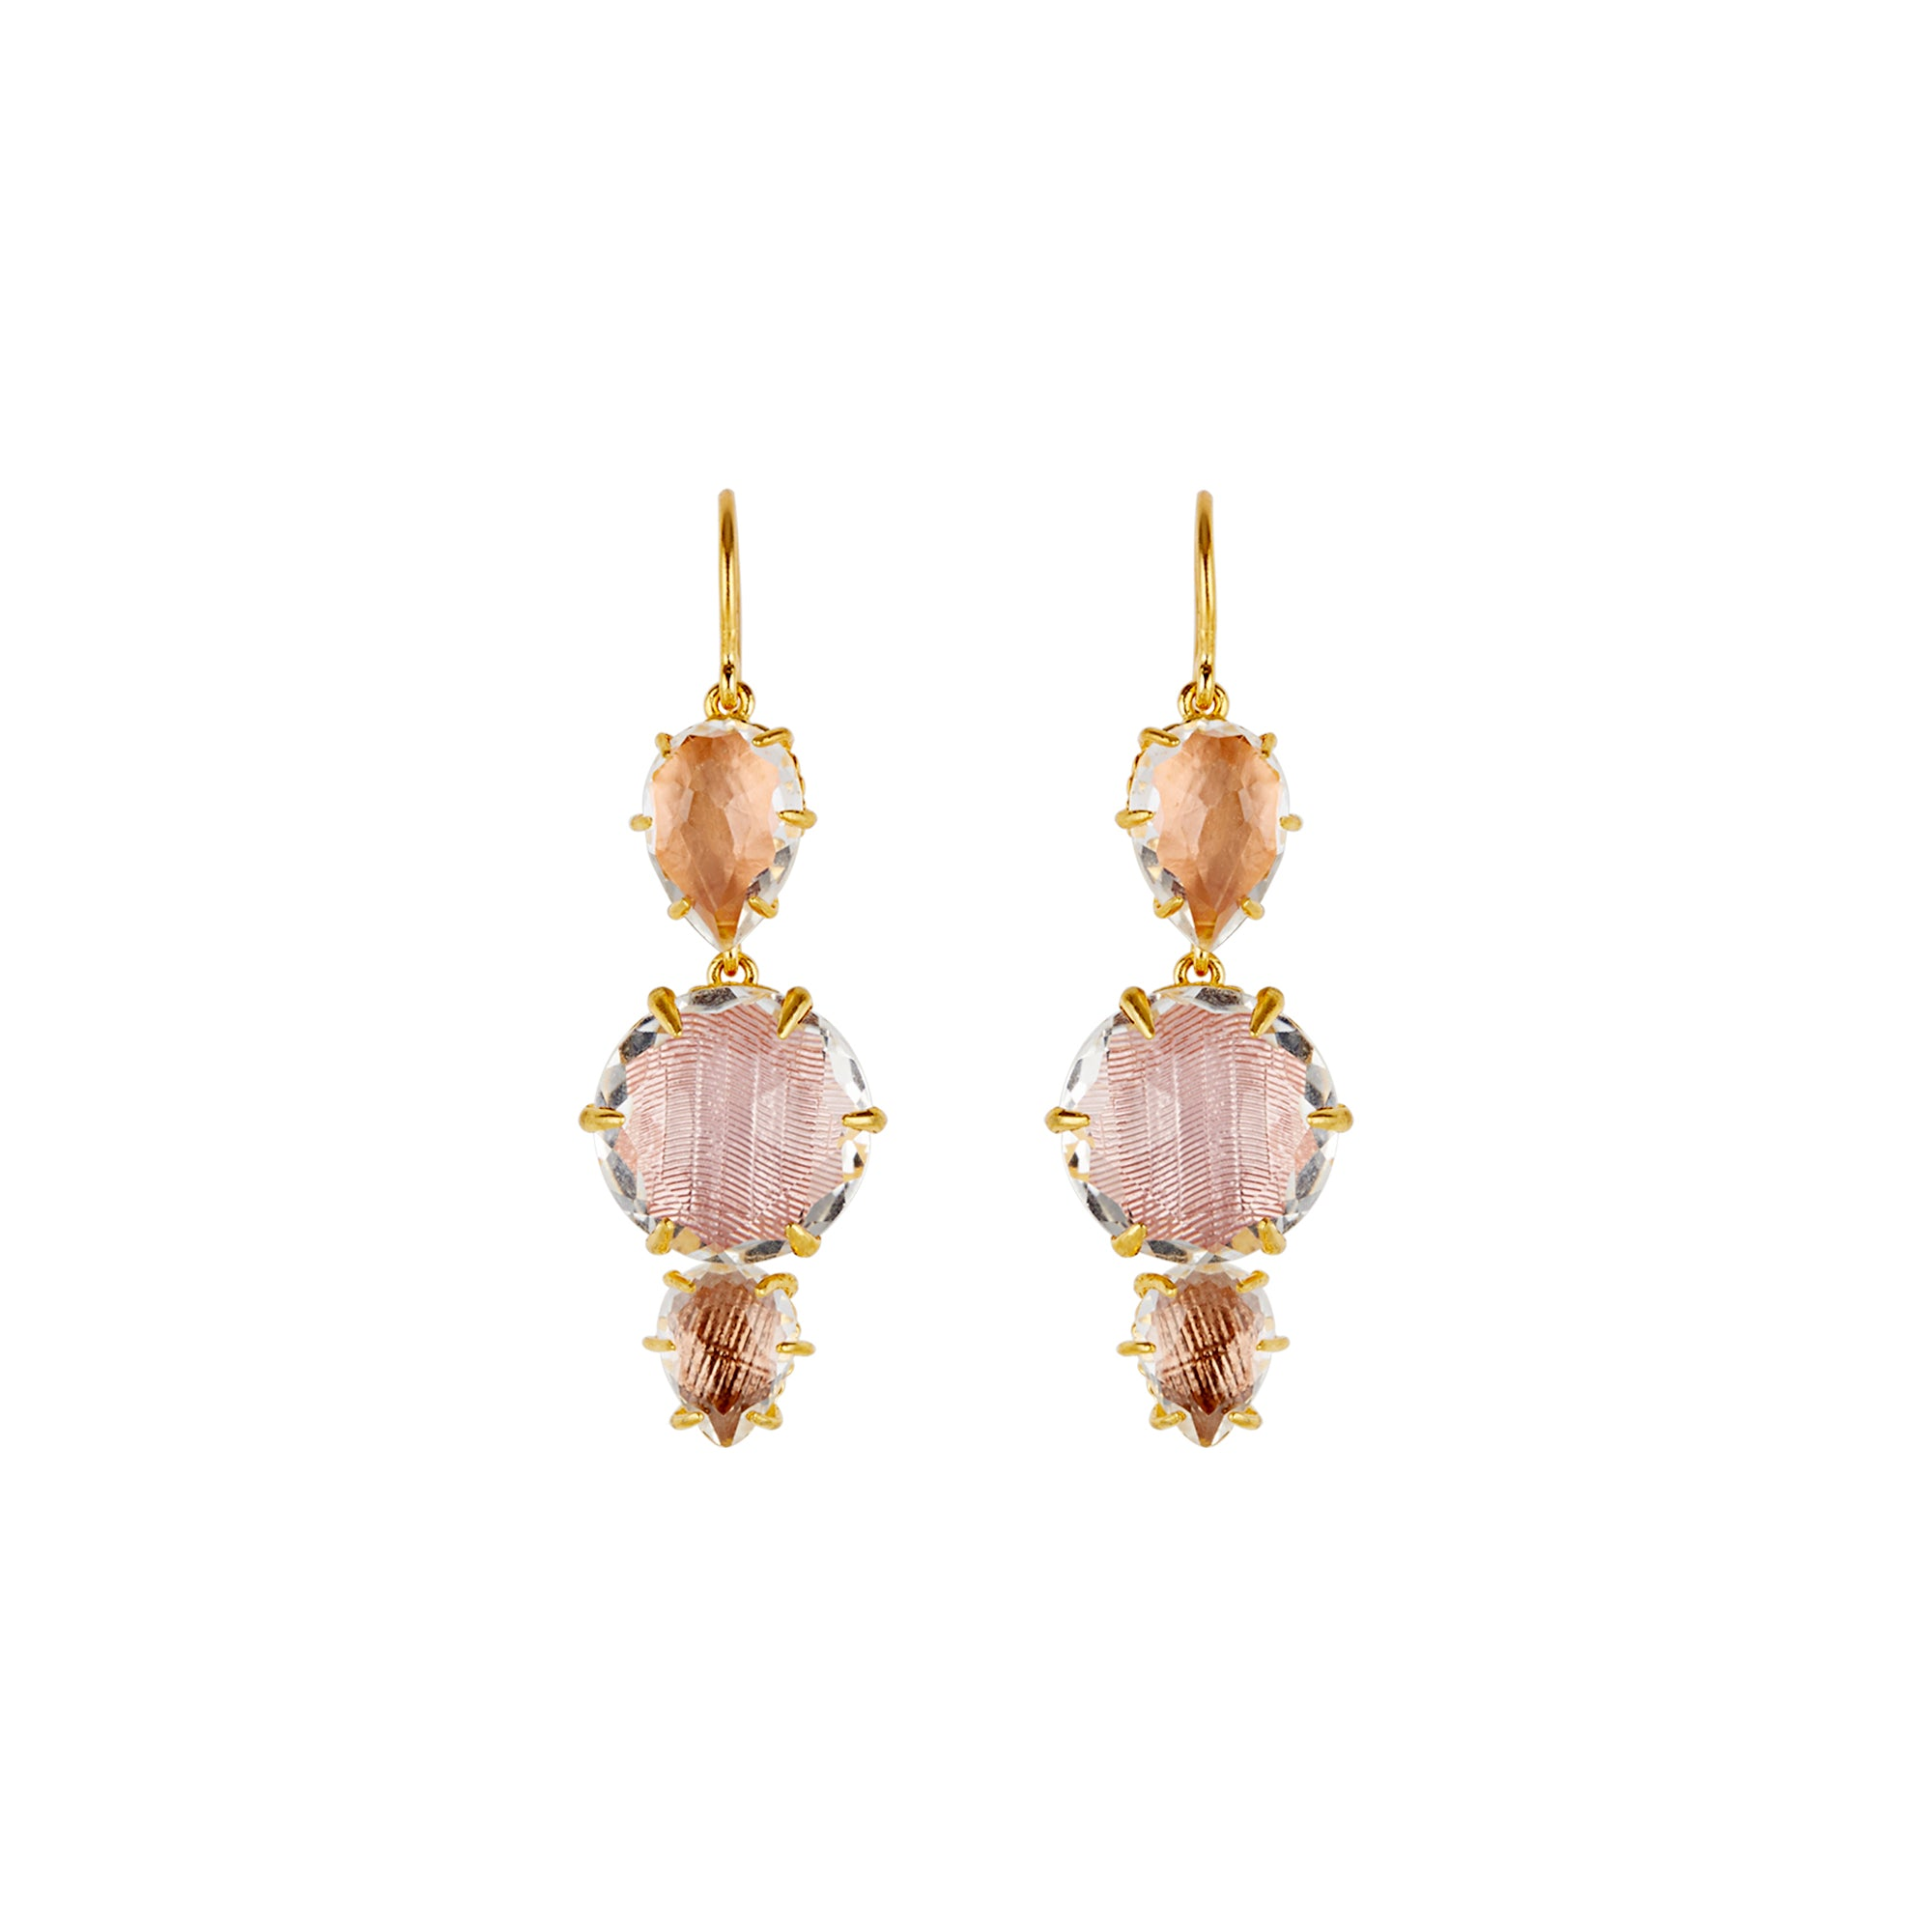 Caterina 3-Drop Earrings by Larkspur & Hawk for Broken English Jewelry